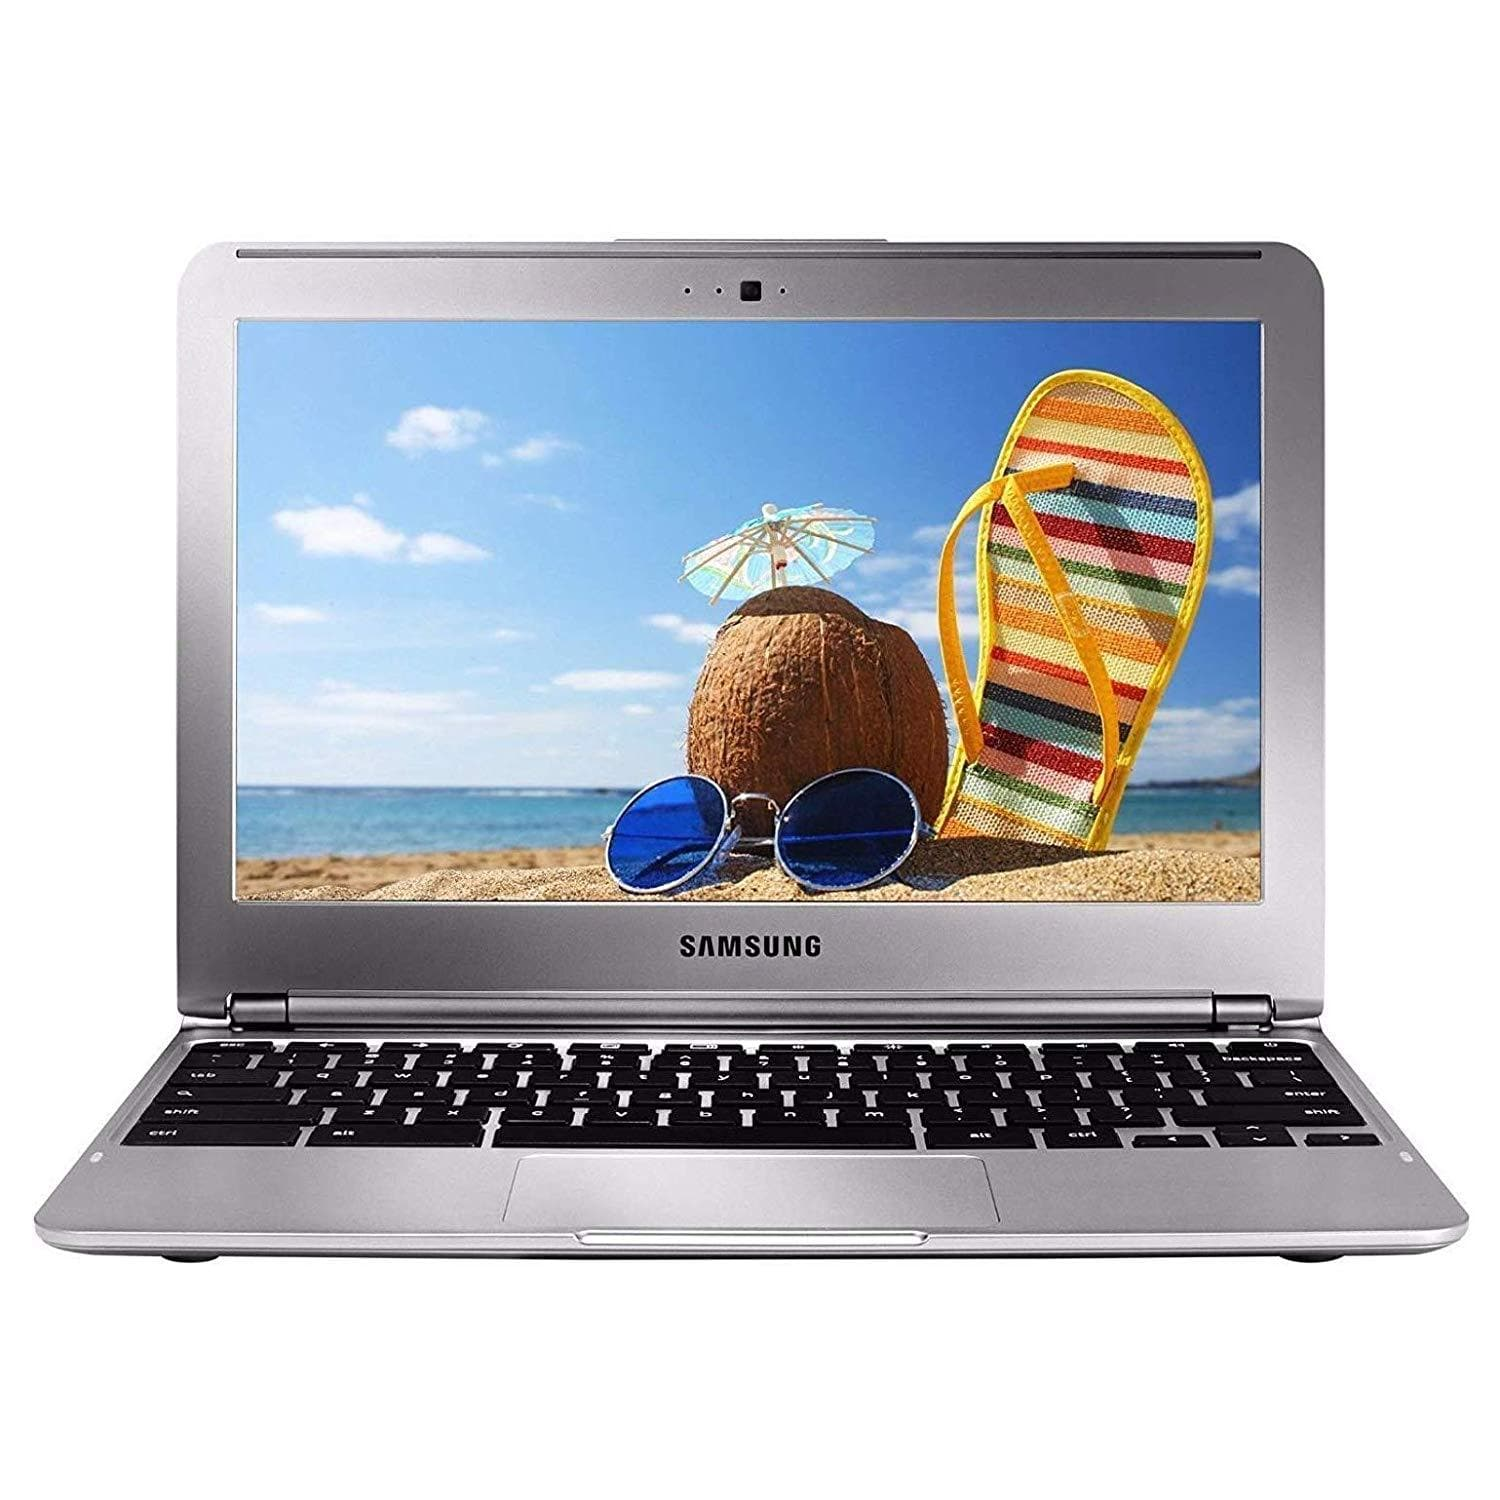 "Samsung Chromebook 11.6"" Laptop PC with Samsung Exynos Dual Core Processor (1.7 GHz), 2GB Memory, 16GB Hard Drive and Chrome OS, XE303C12-A01US, Silver (Pre-Owned) - FLJ CORPORATIONS"